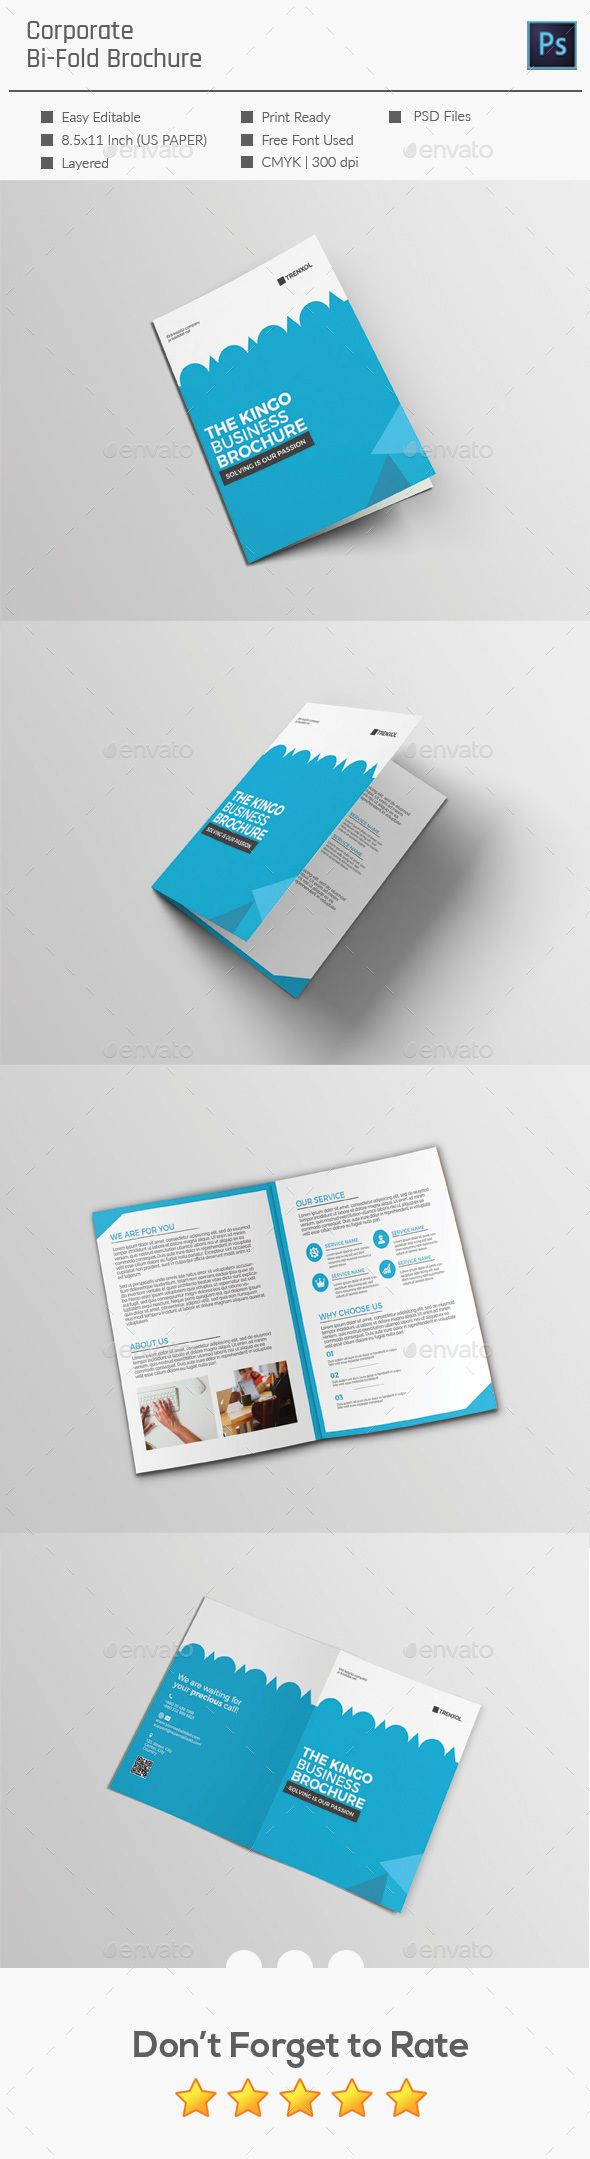 #Corporate #Bi-fold Brochure - Corporate #Brochures Download here: https://graphicriver.net/item/corporate-bifold-brochure/19746567?ref=alena994